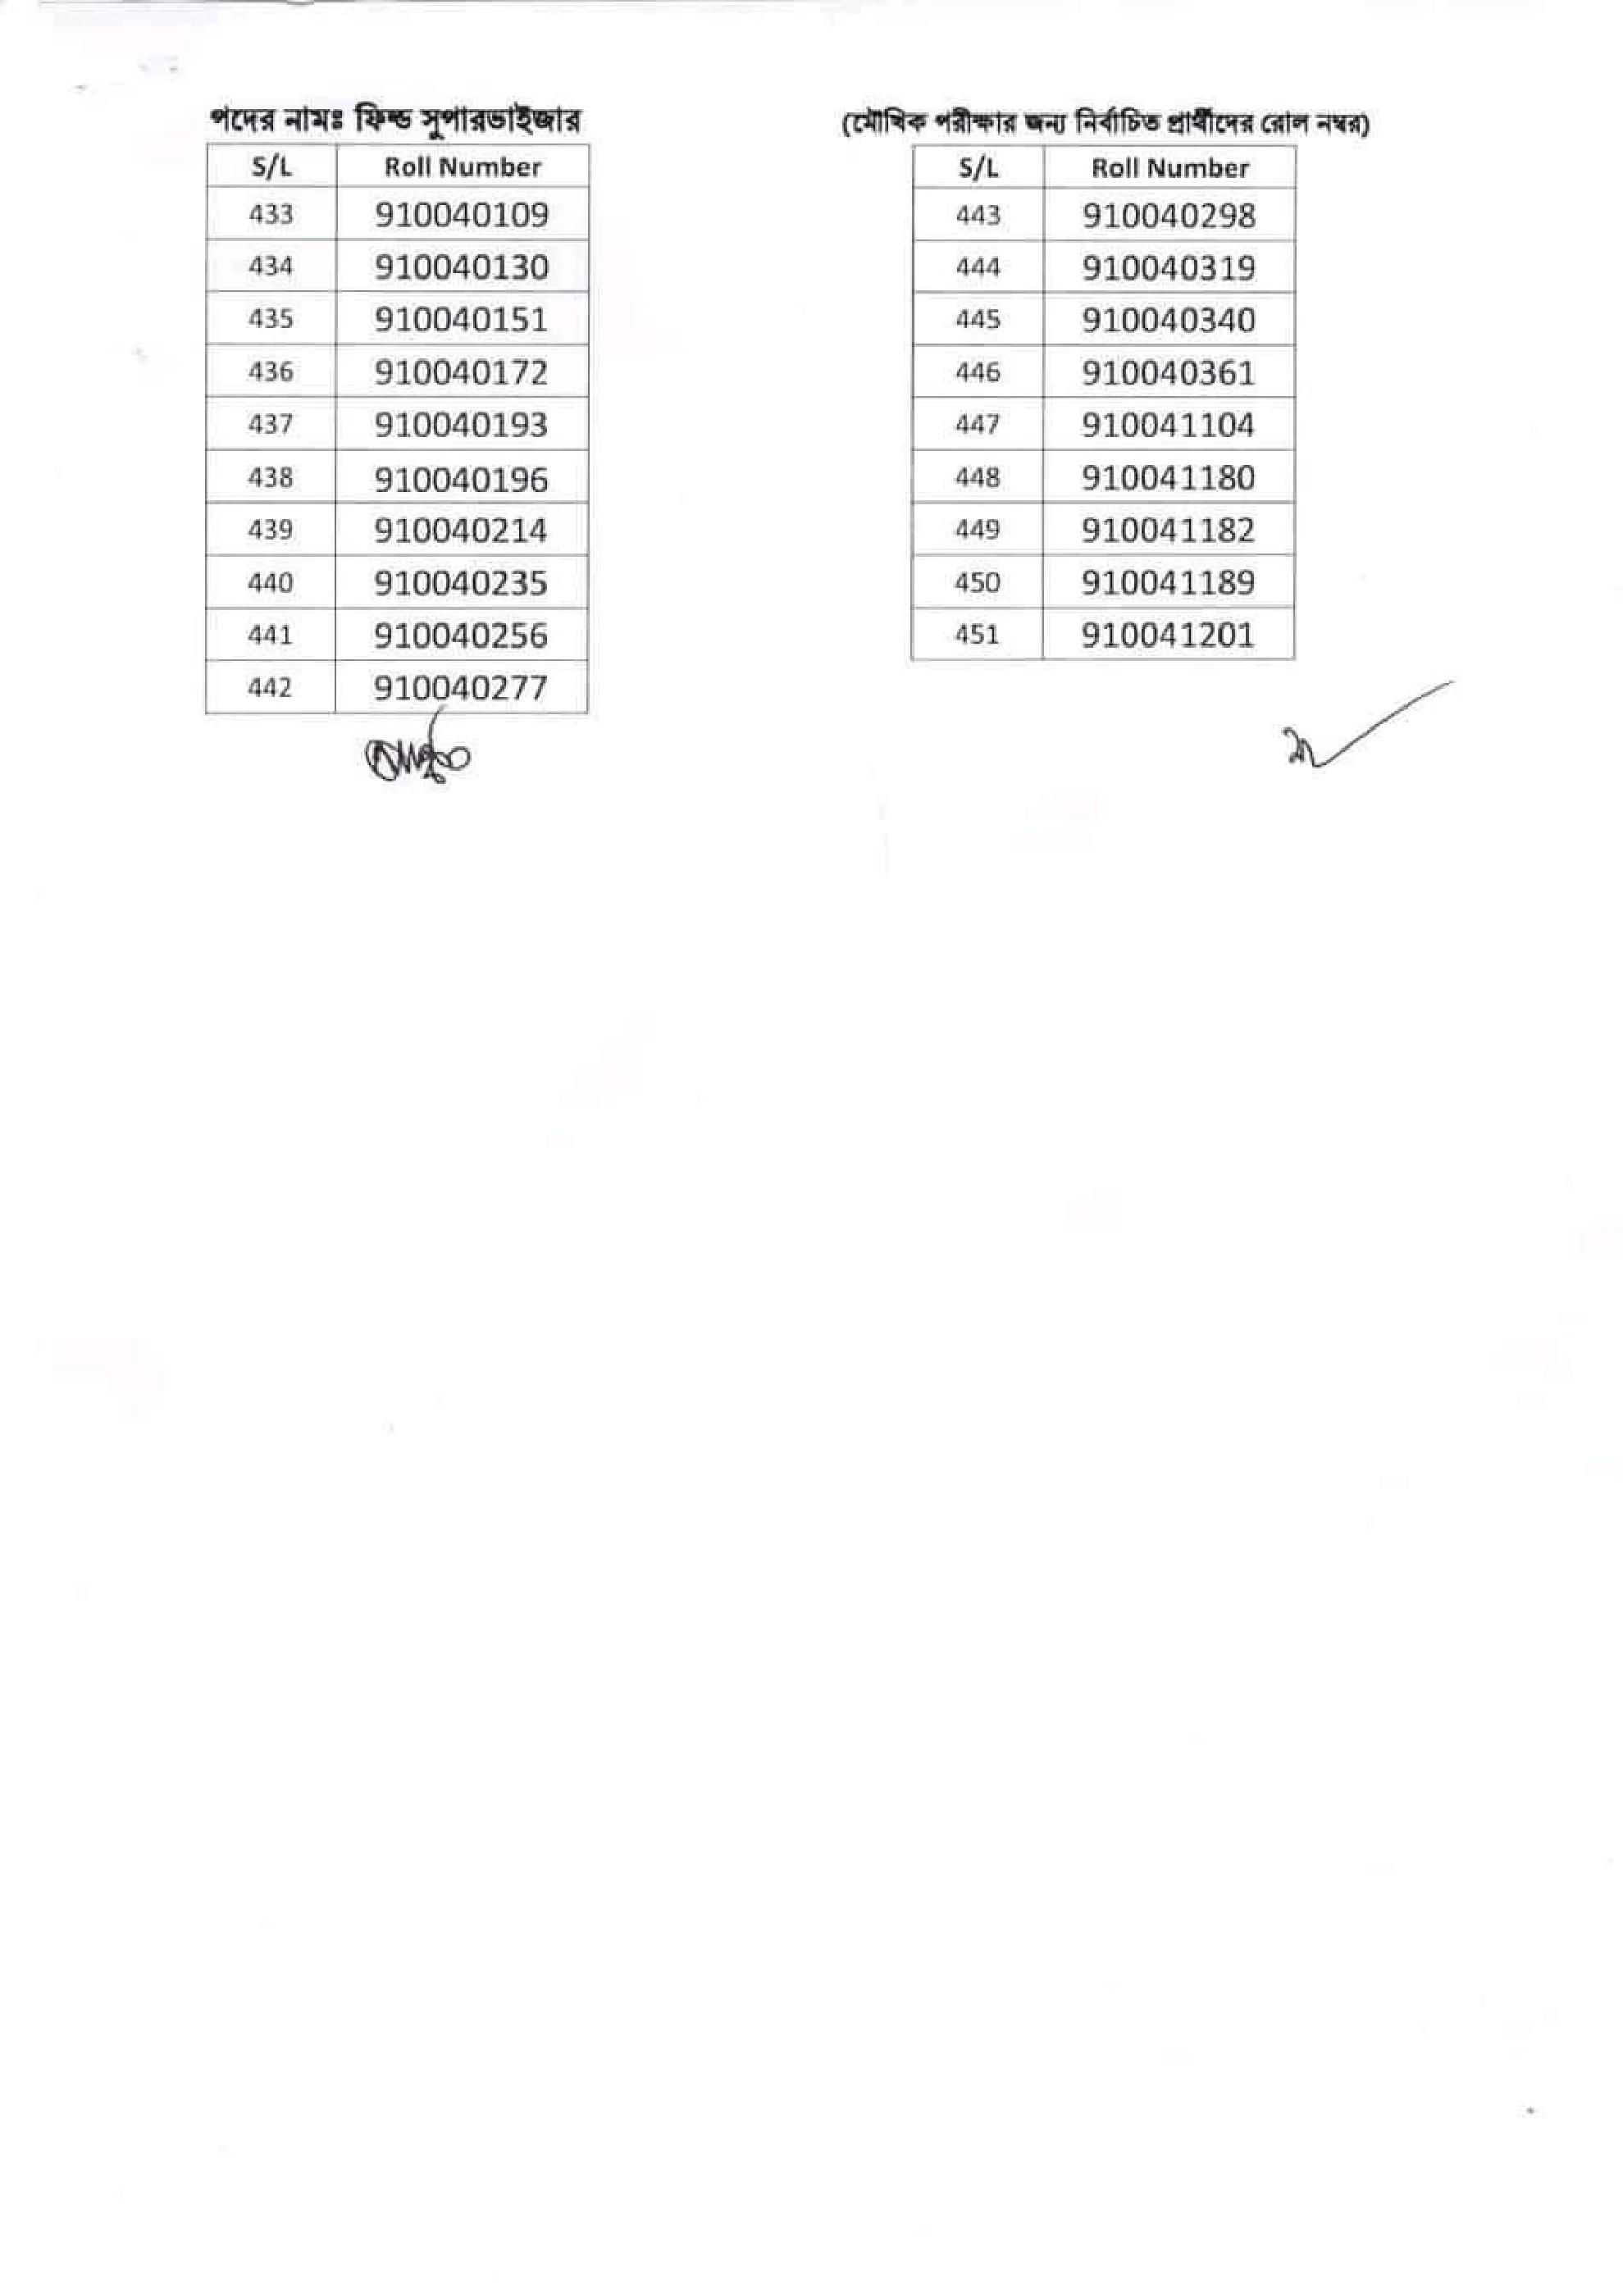 dss-result-page-028